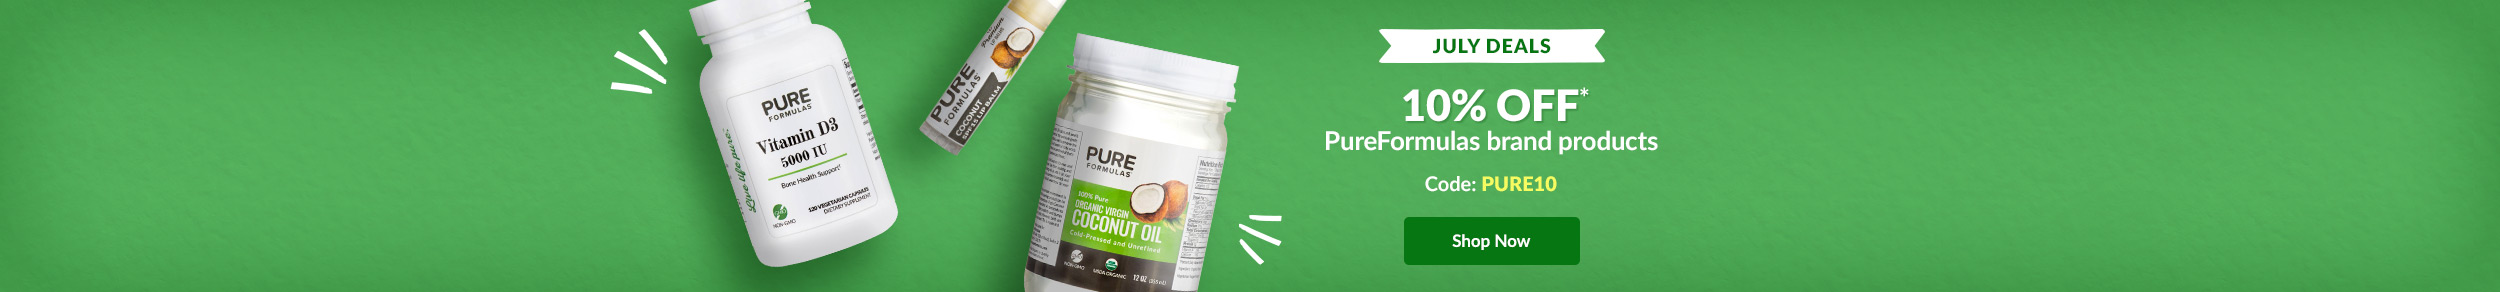 July Deals: 10% OFF PureFormulas brand products - Code:PURE10